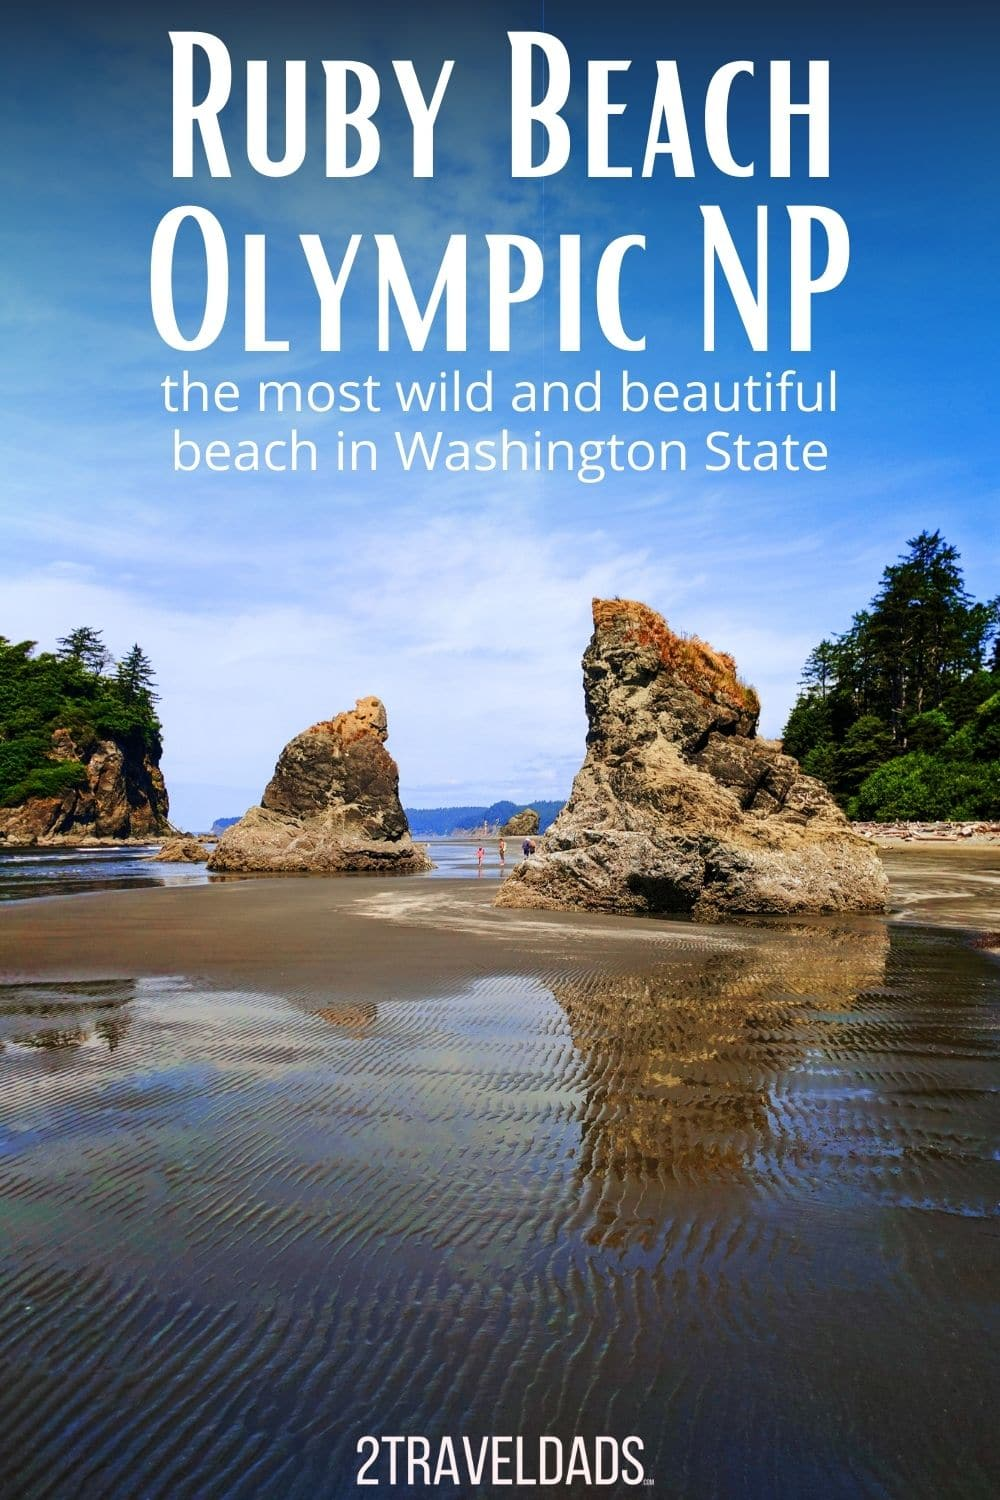 Best things to do at Ruby Beach at Olympic National Park. The most wild and beautiful beach in Washington State, a day trip from Seattle to pristine nature with rainforests and hiking nearby.